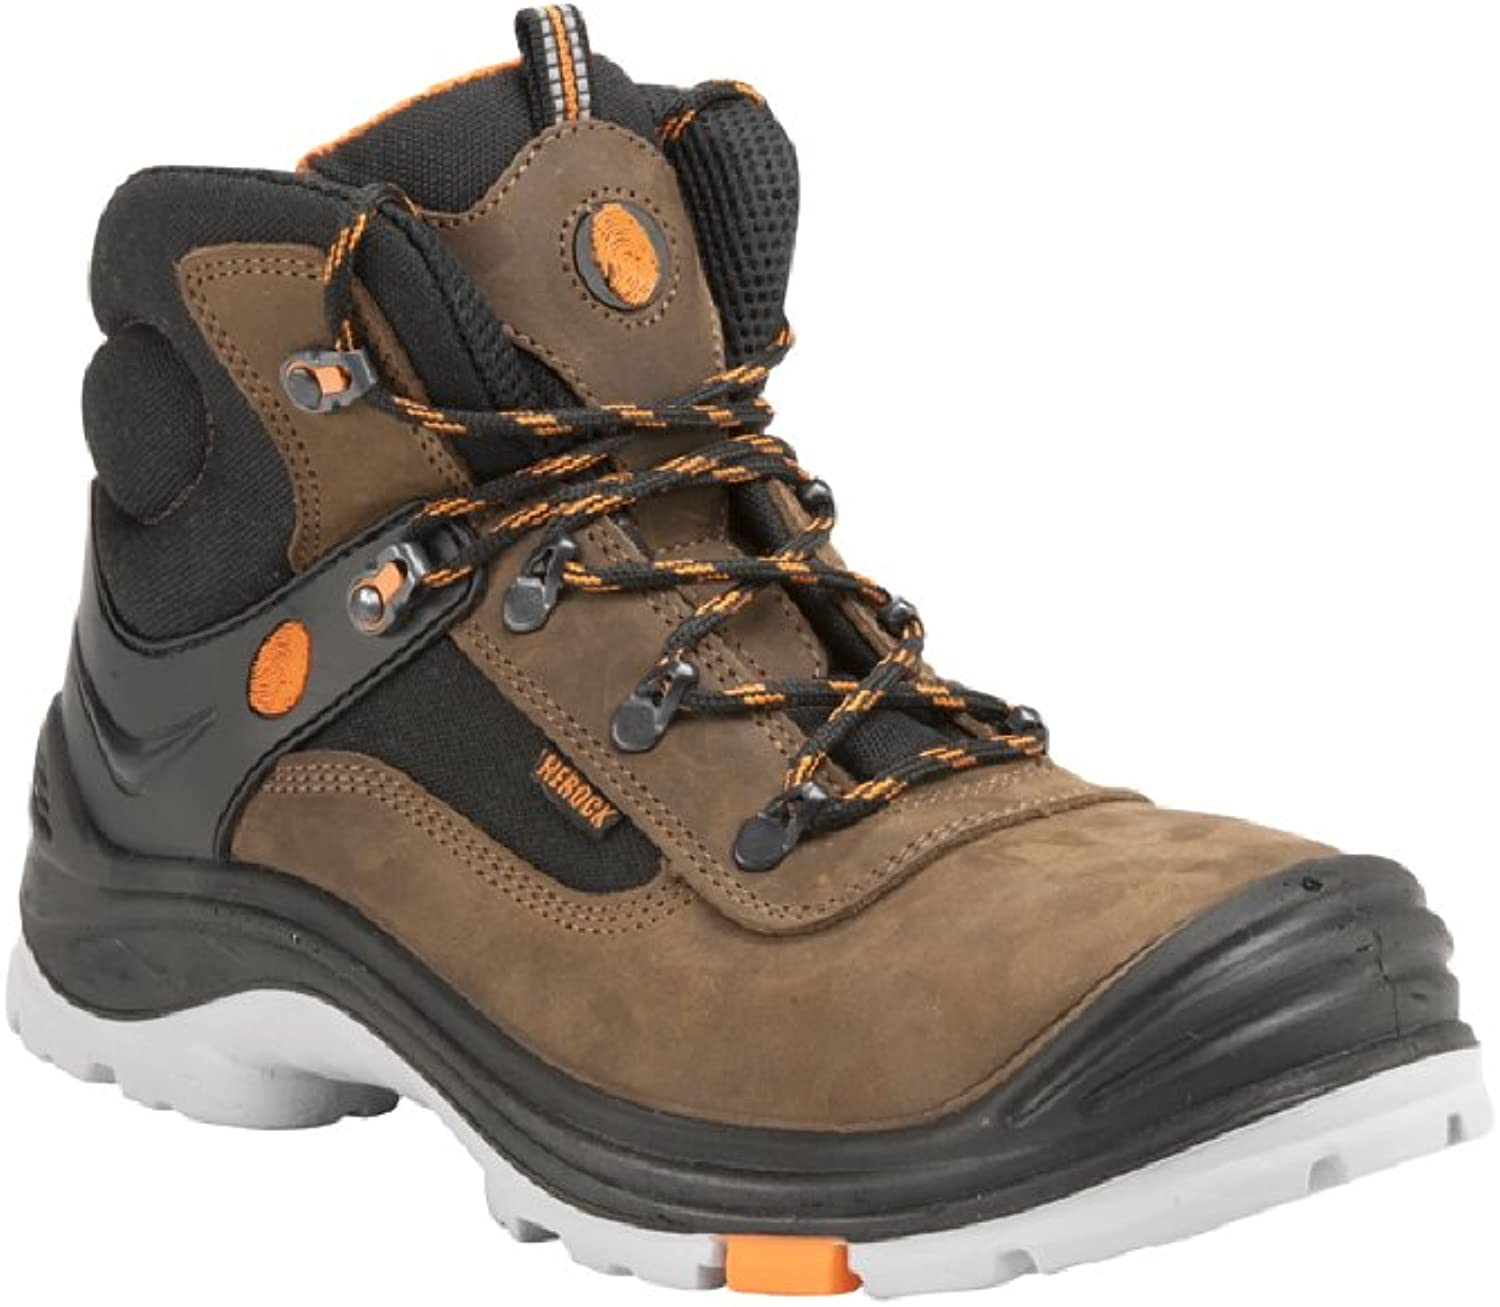 Magnus High Compo S3 shoes - Rising Safety shoes Soul Rebel Footwear